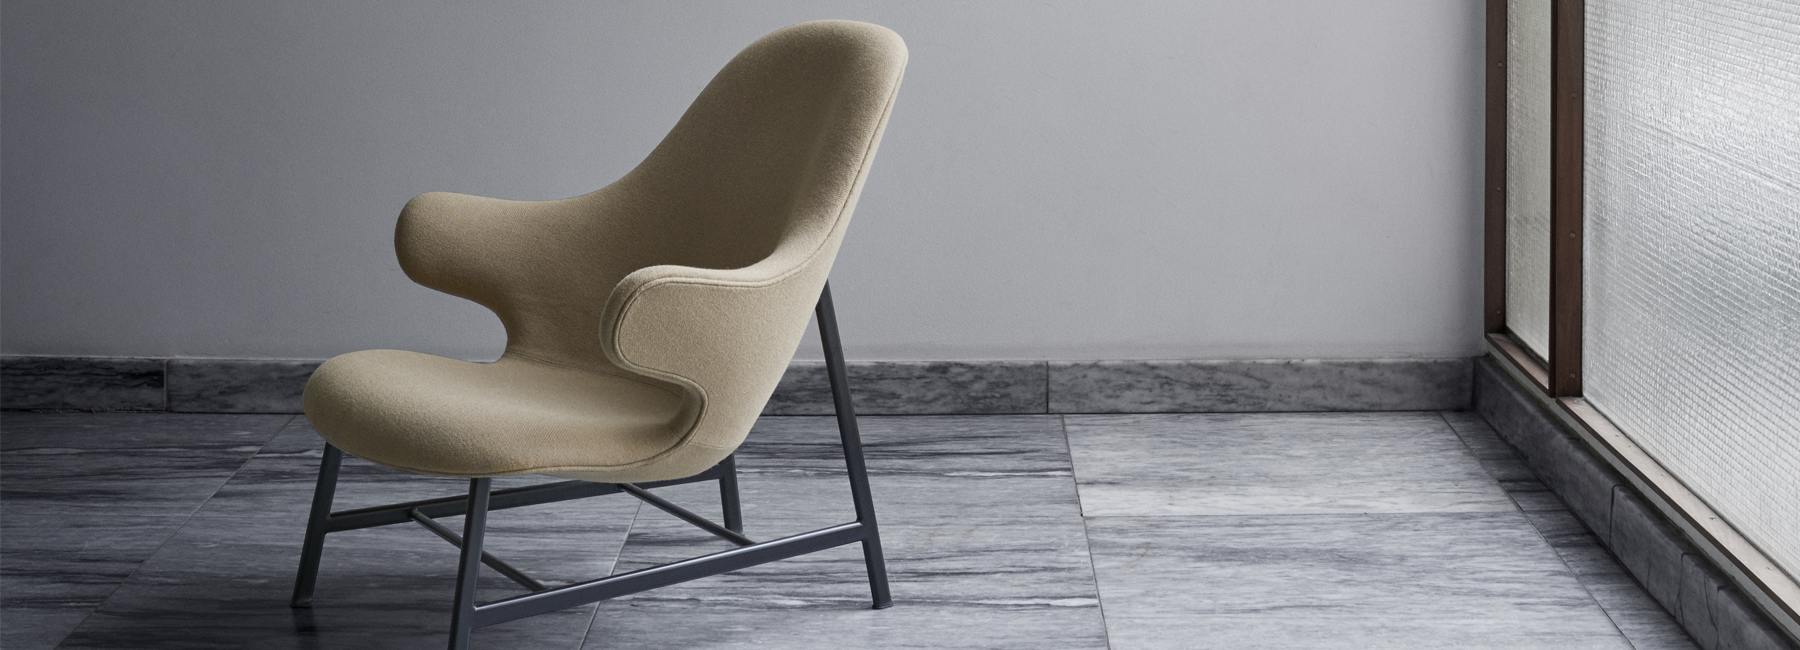 &tradition Jaime Hayón Presents Catch Lounge Chair For Tradition At Imm